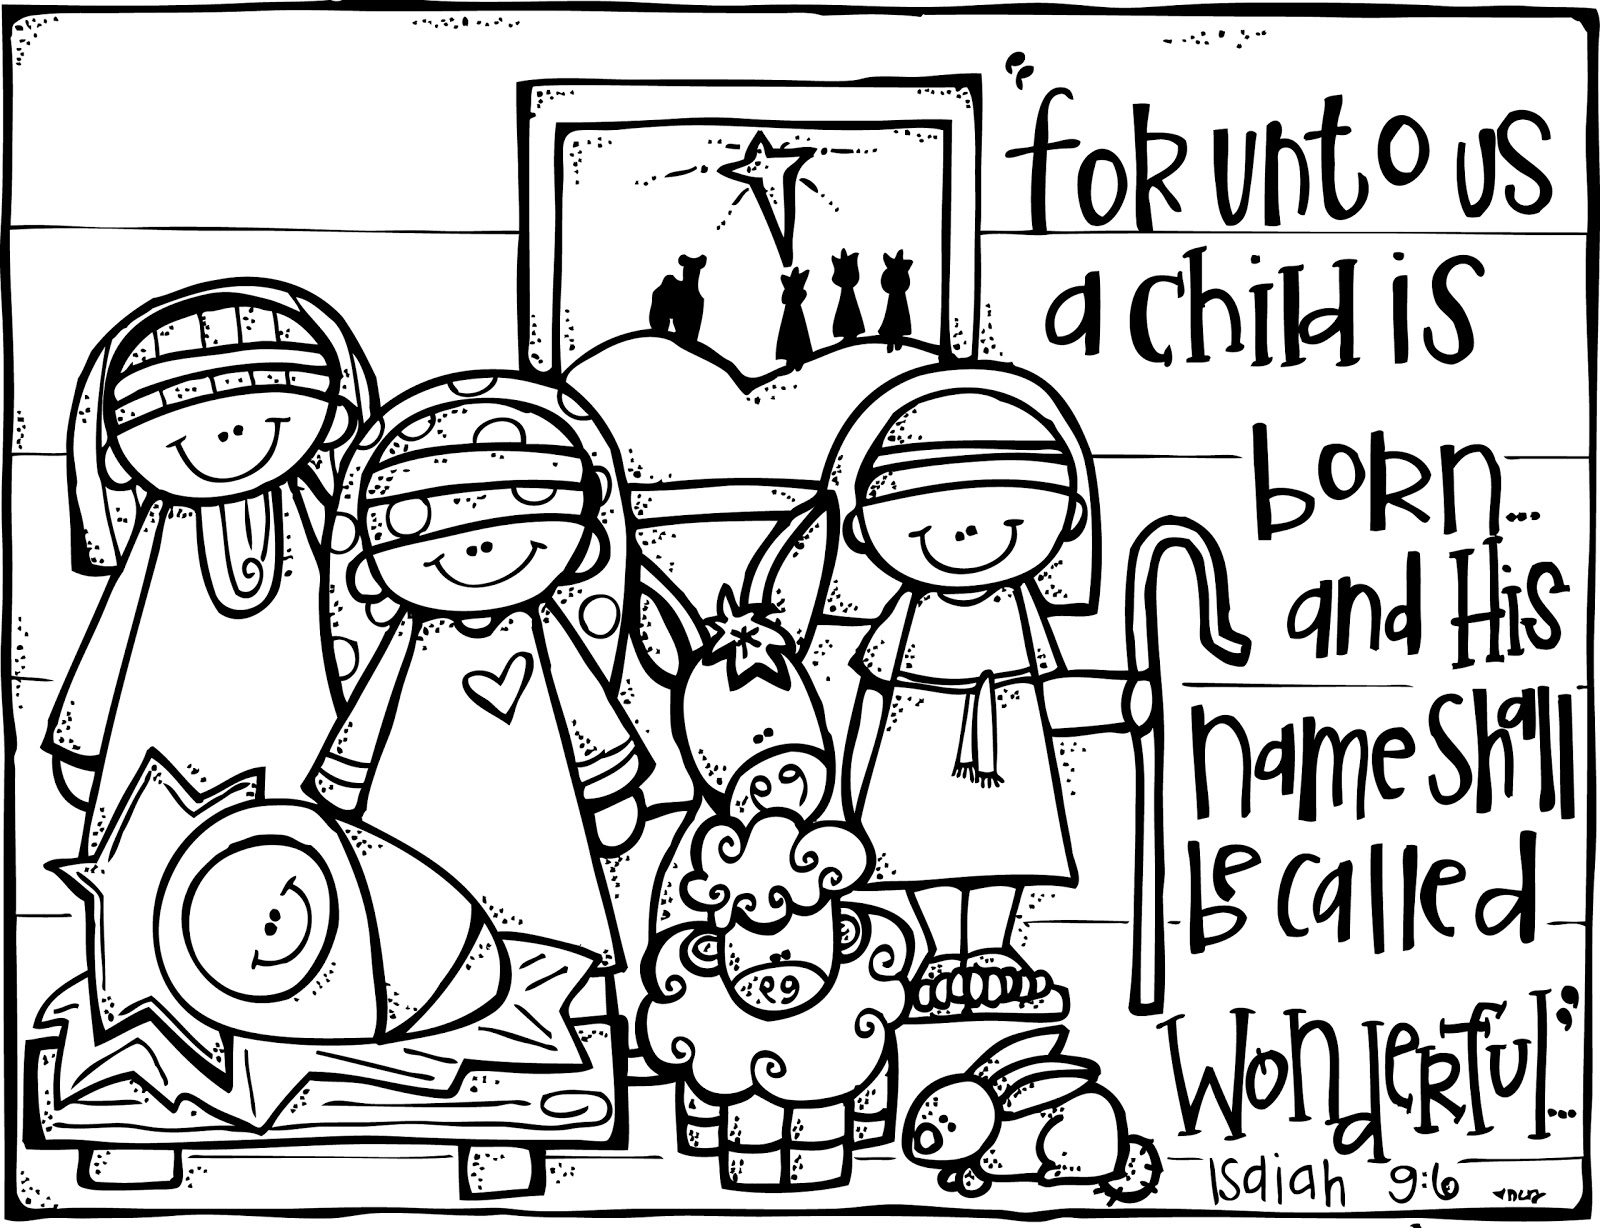 nativity coloring pages pictures free printable nativity coloring pages for kids best coloring on free printable christian christmas games